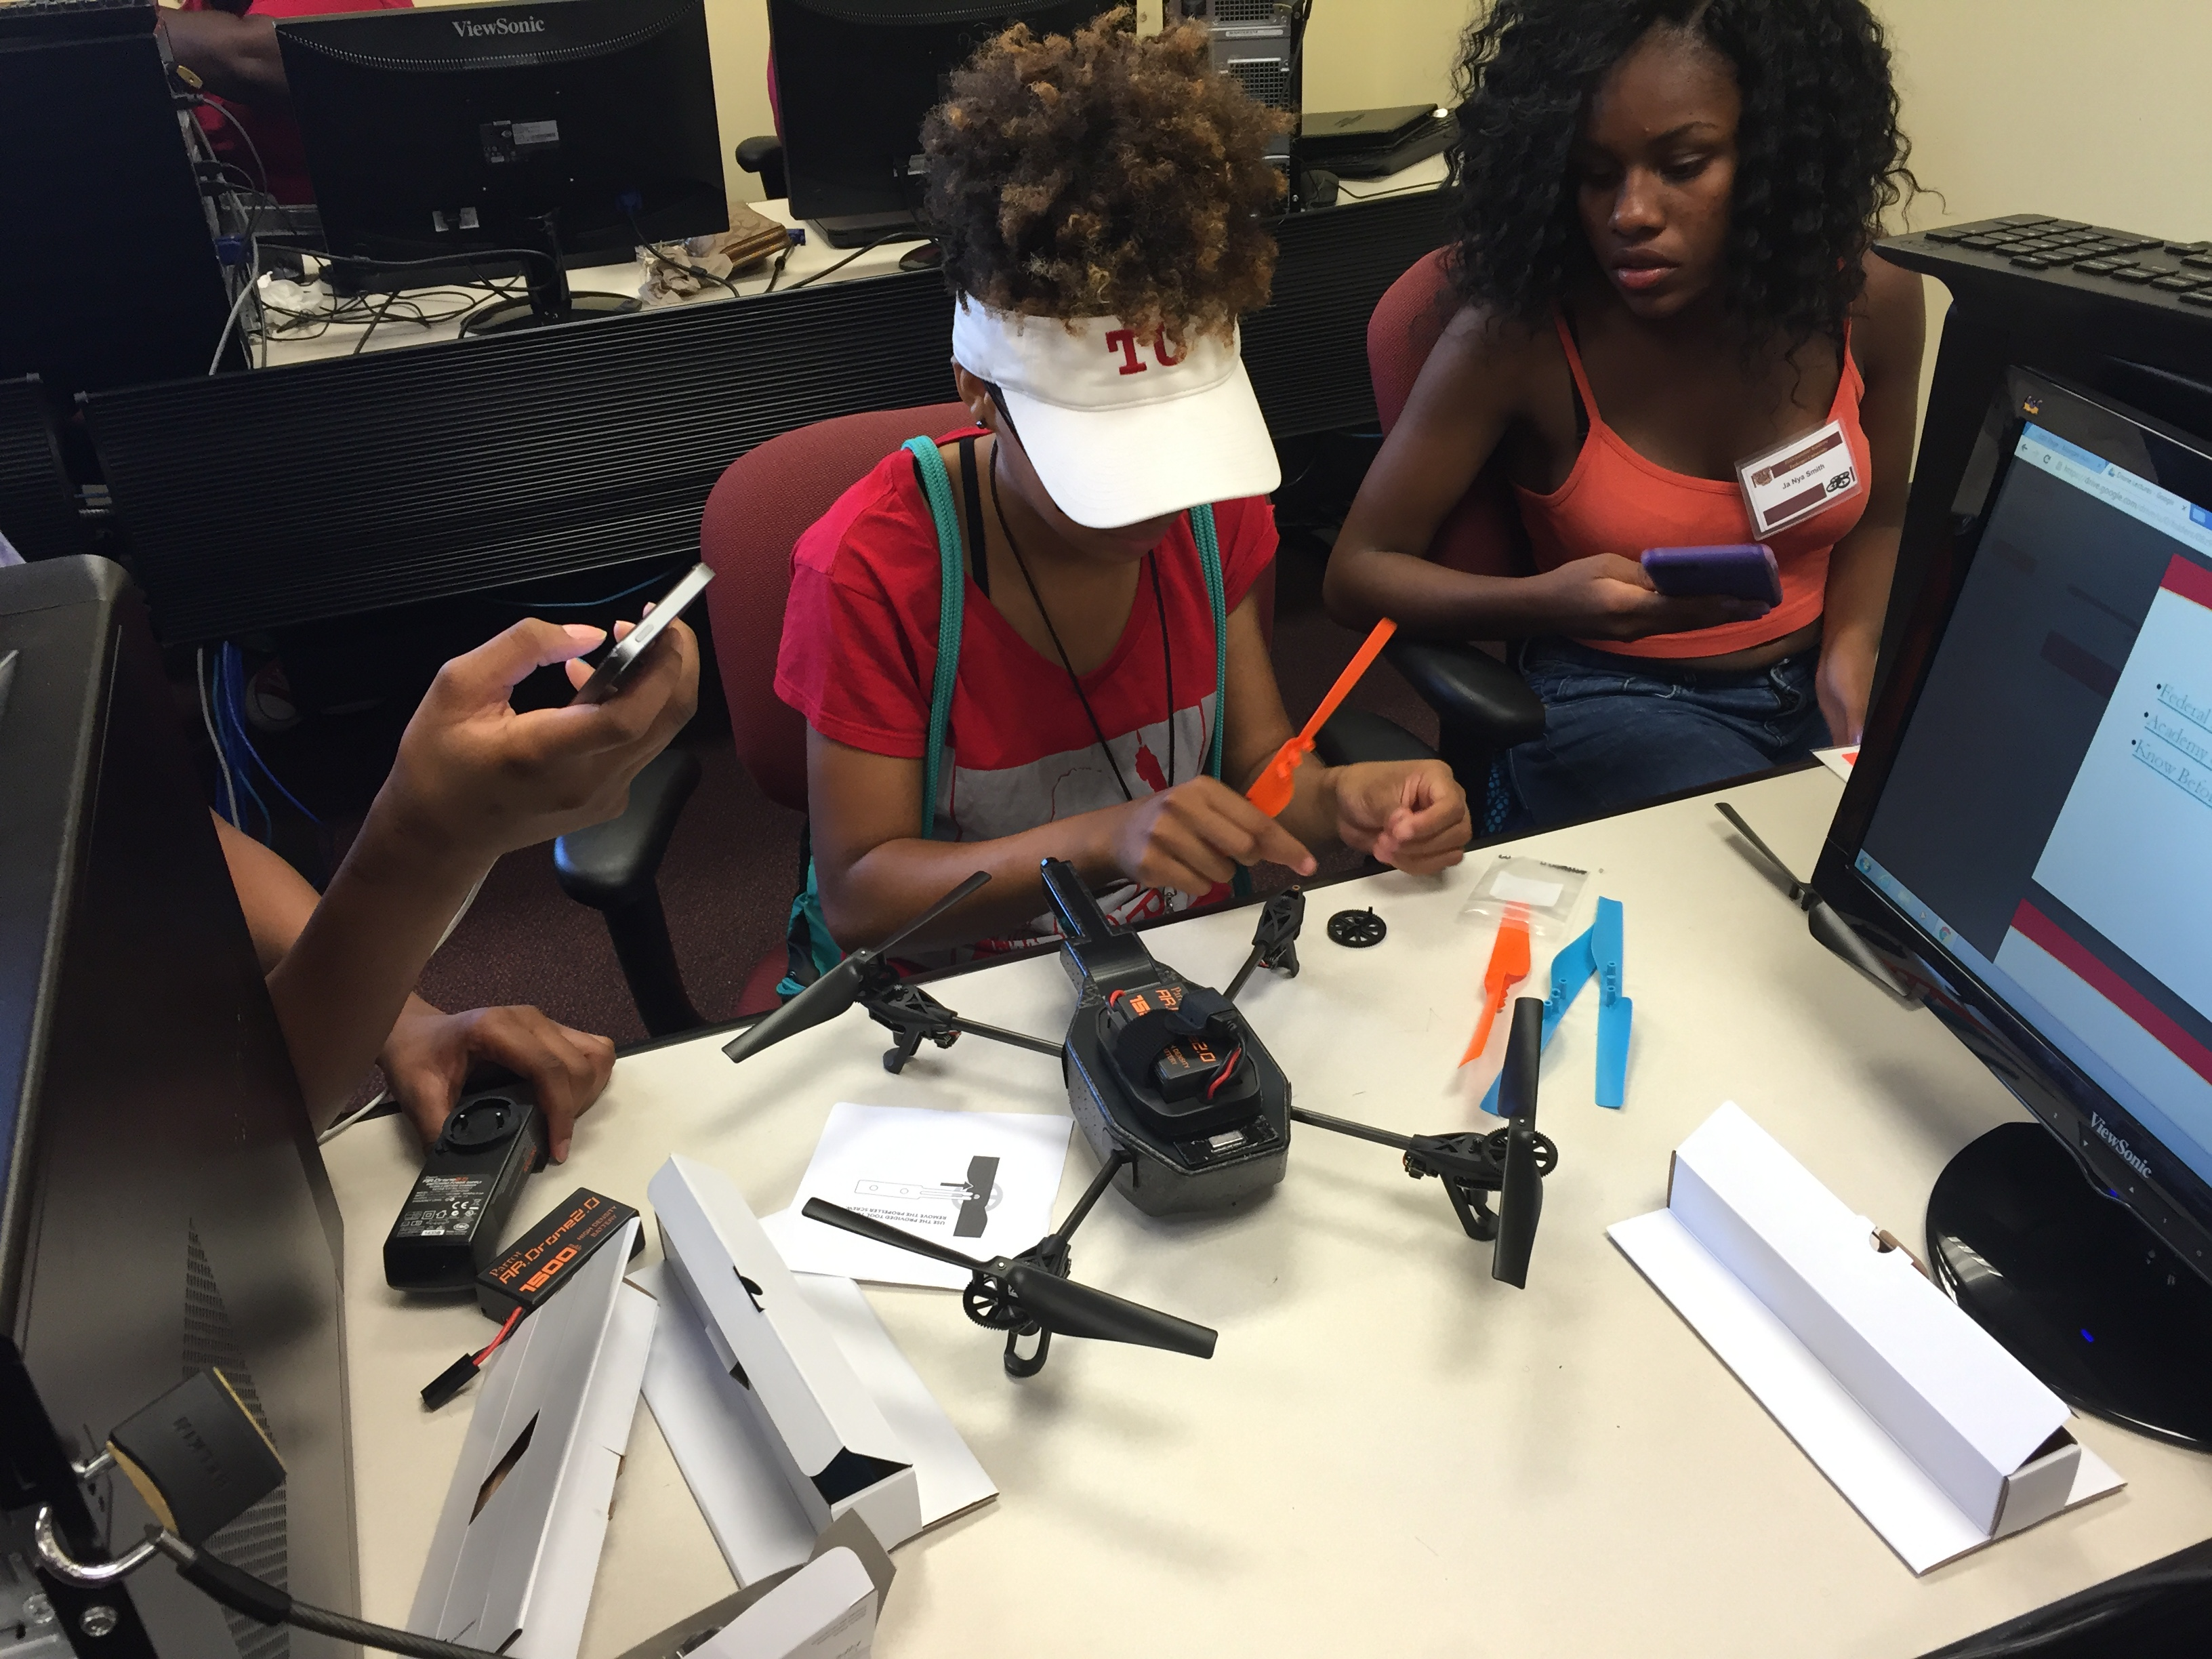 Students assemble drones in lab